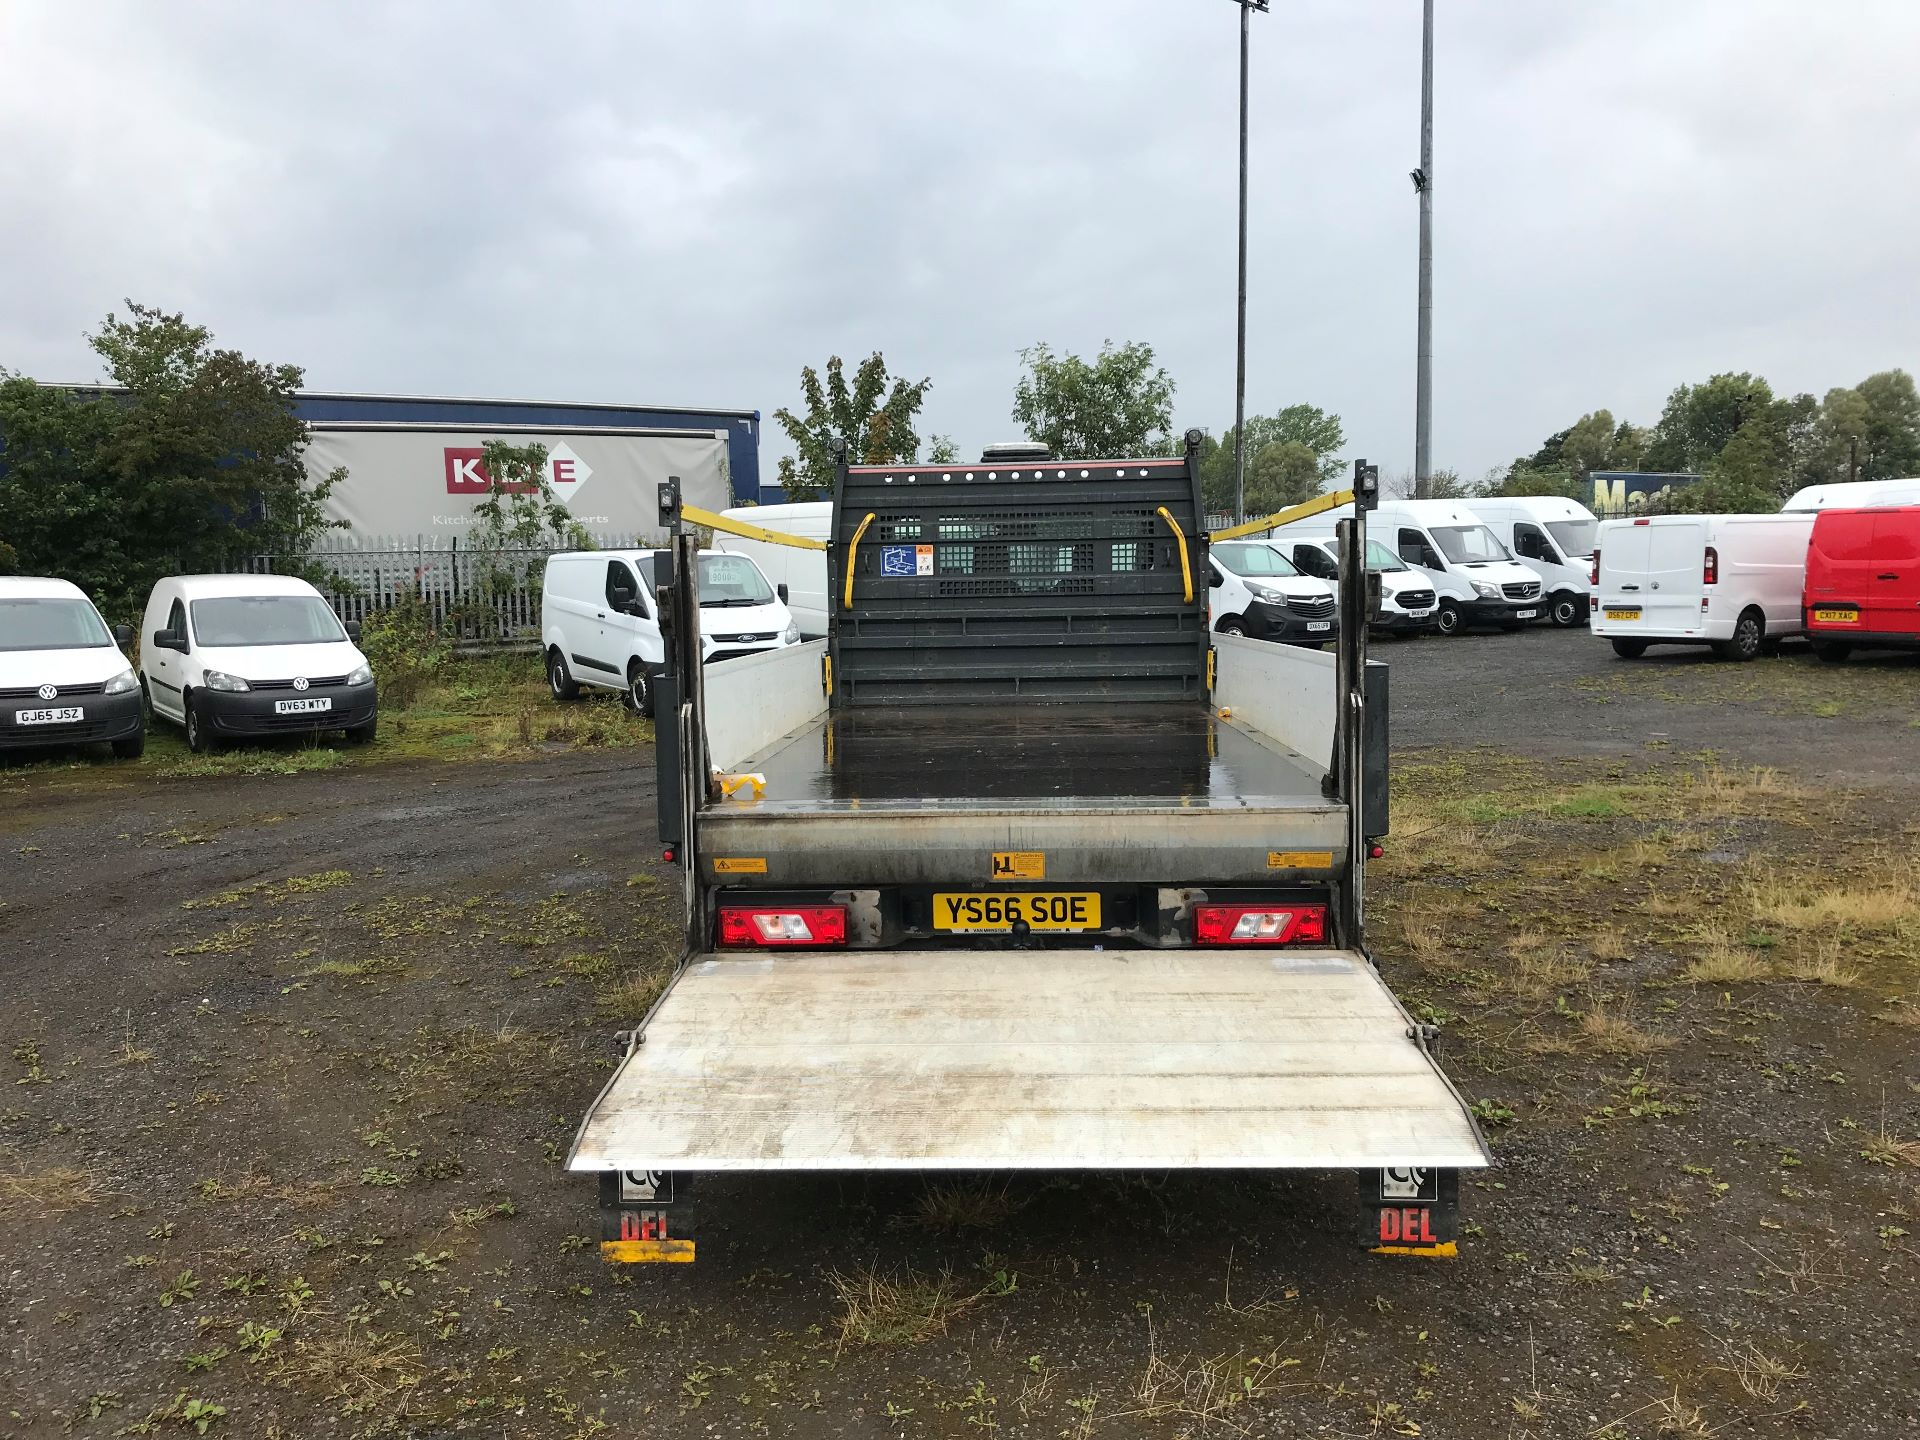 2016 Ford Transit 2.2 Tdci 125Ps Heavy Duty Chassis Cab *VALUE RANGE VEHICLE CONDITION REFLECTED IN PRICE*  (YS66SOE) Image 15